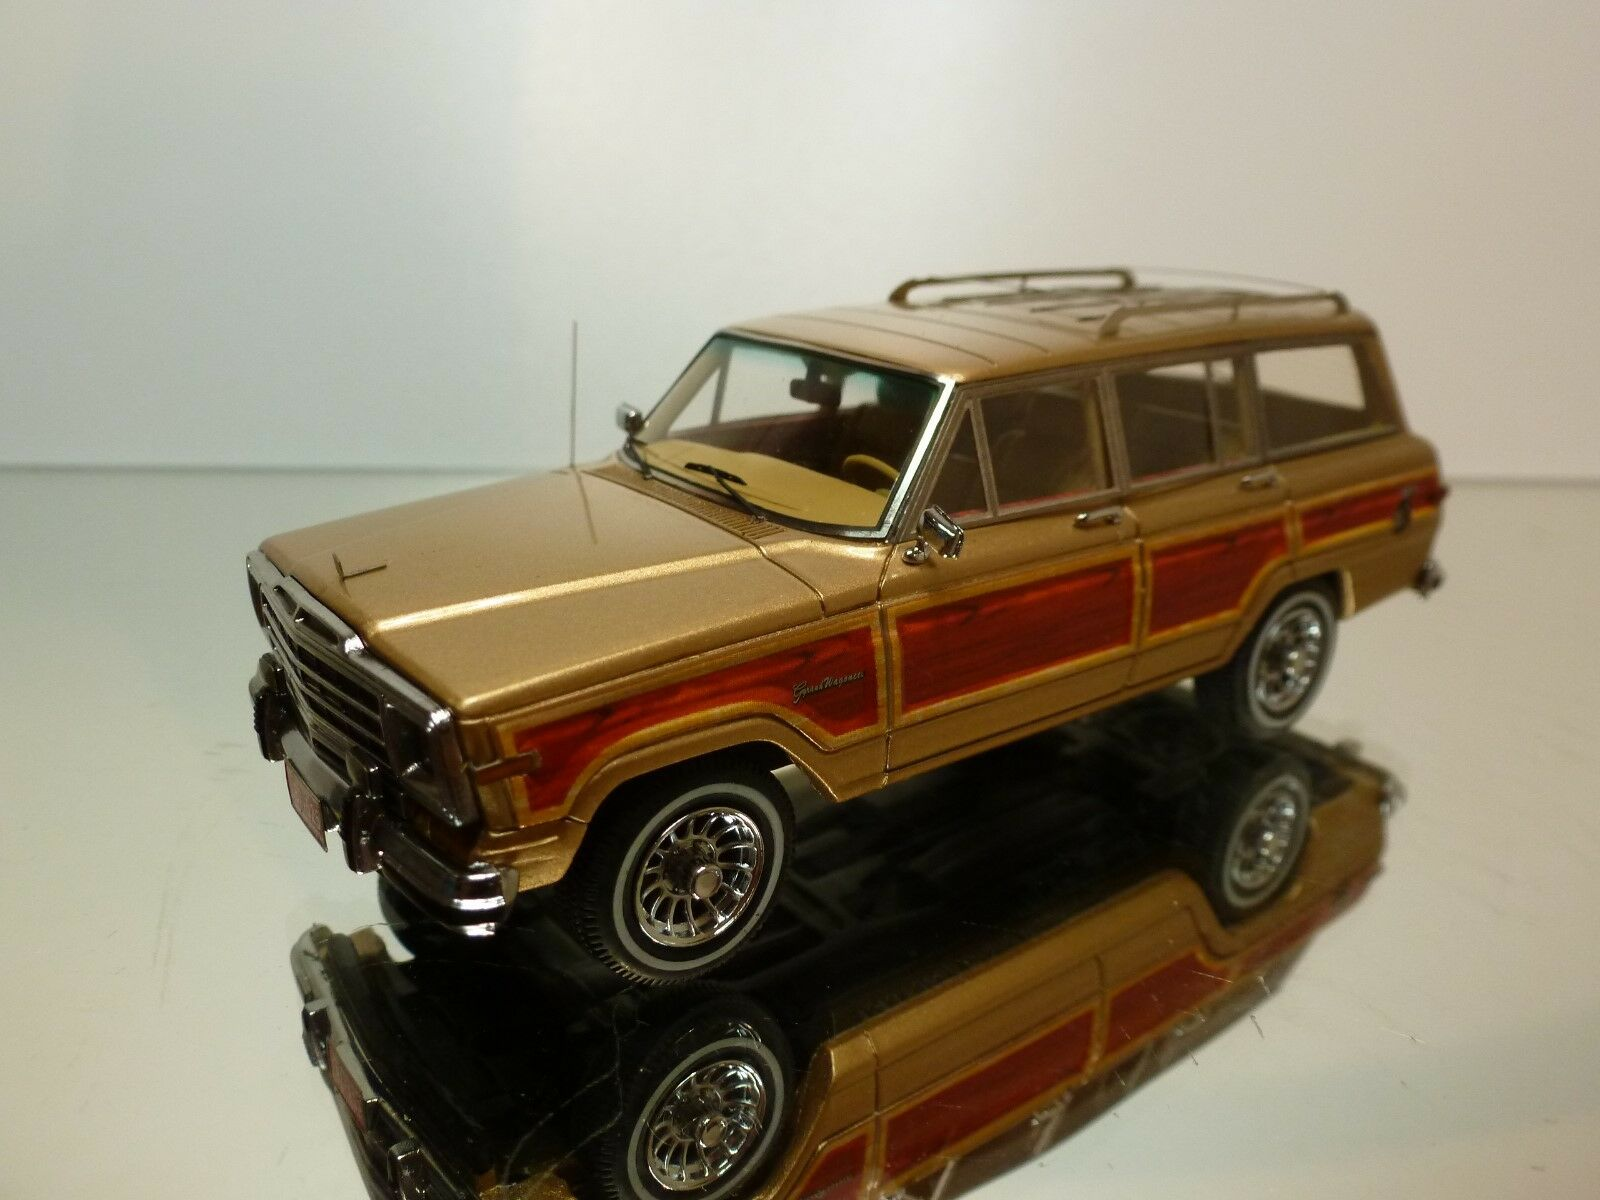 ventas al por mayor NEO SCALE MODELS 1 43 - JEEP GRAND GRAND GRAND WAGONEER 43525  - EXCELLENT CONDITION 28  mas barato